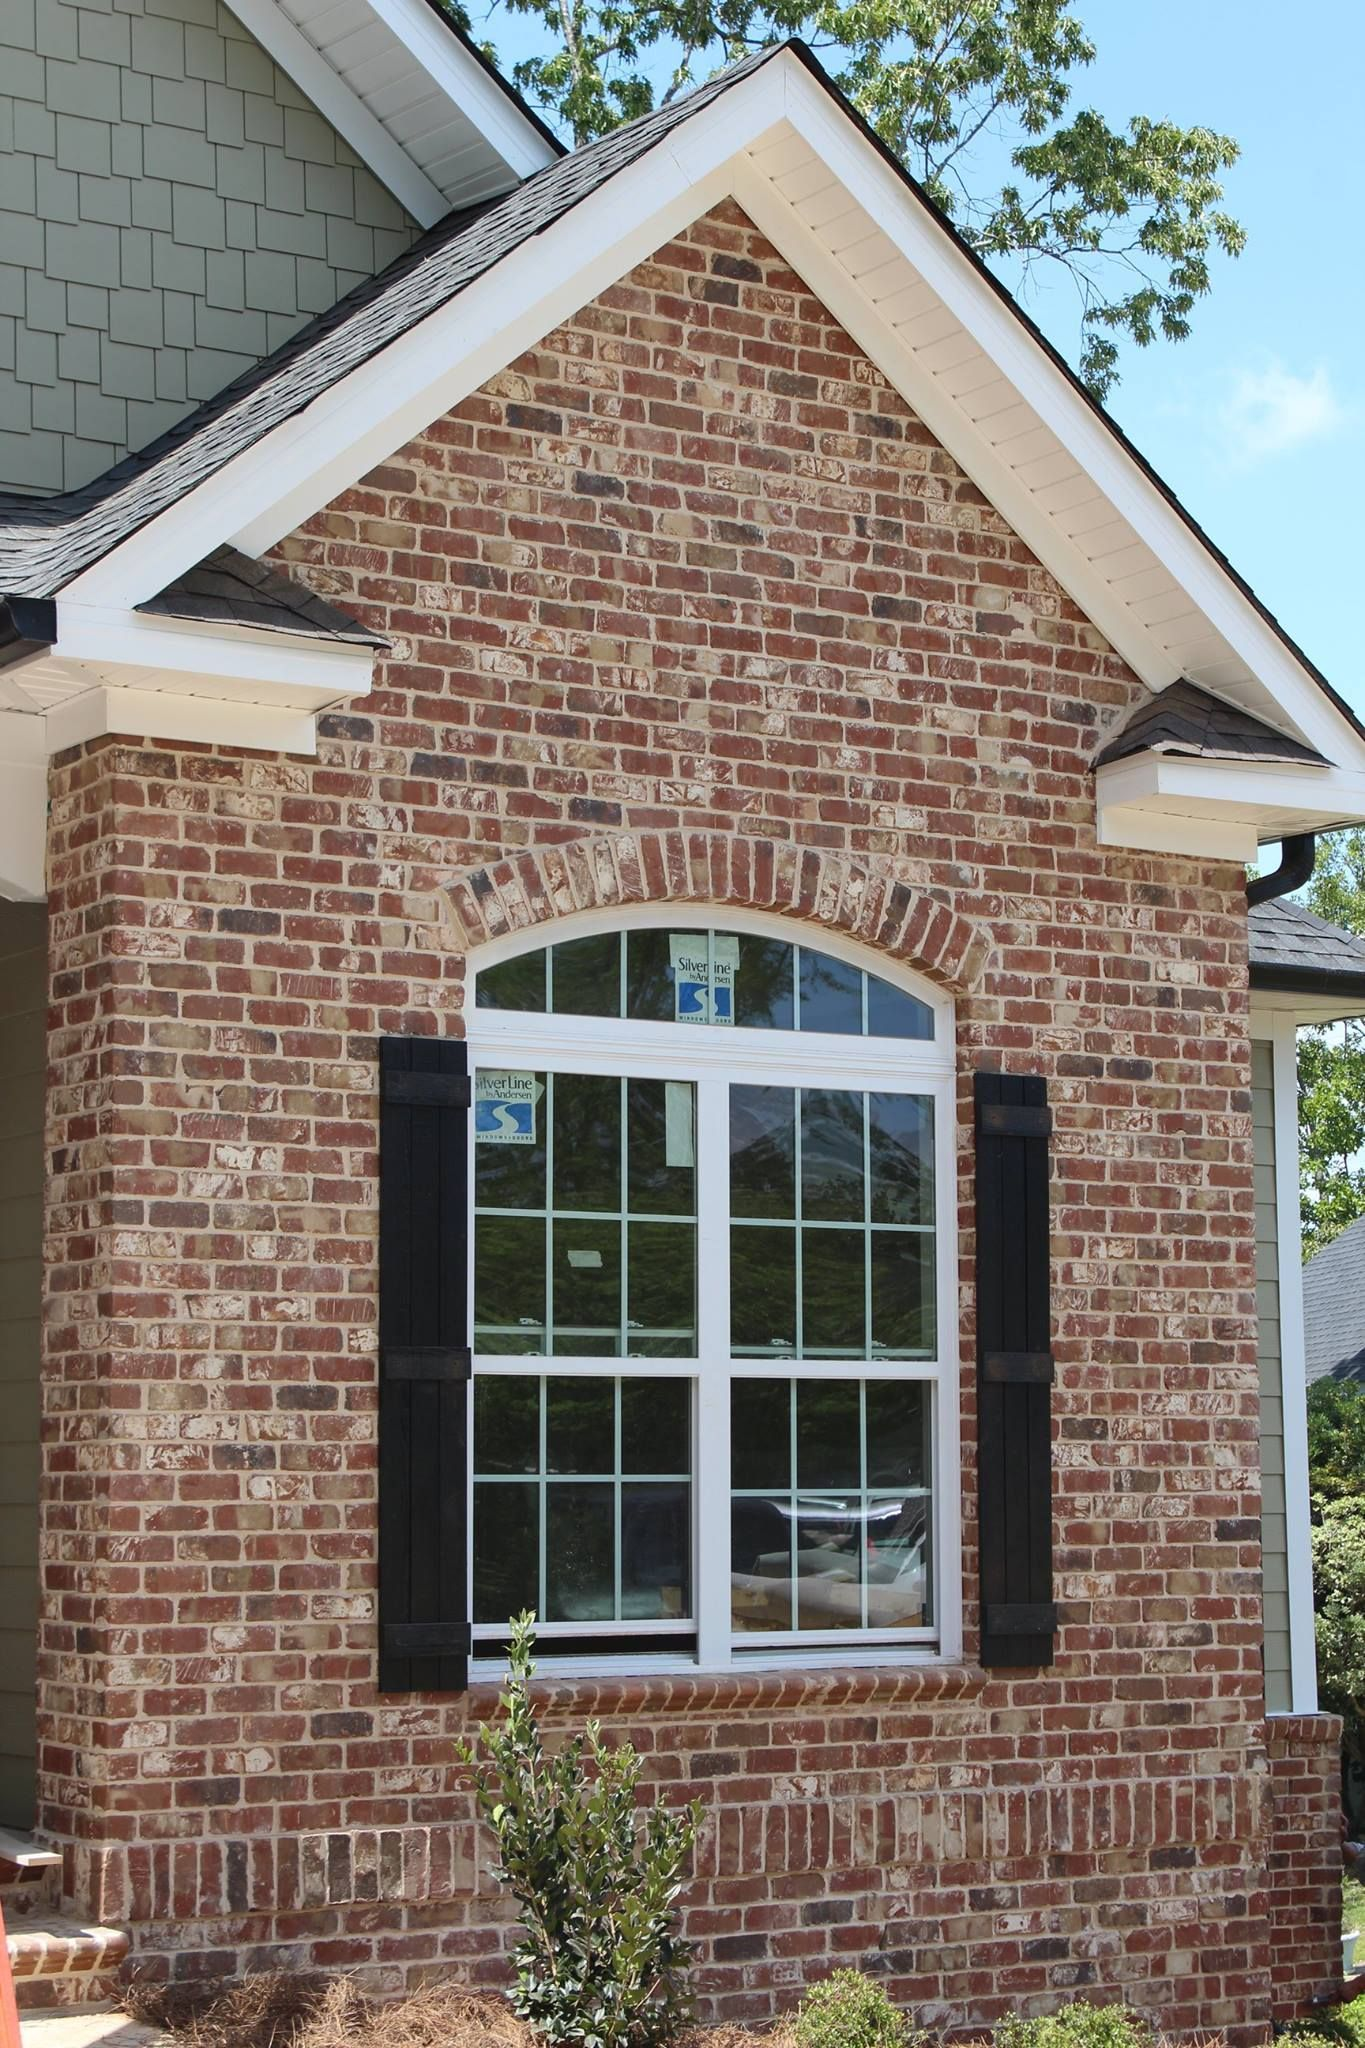 32 Exterior Paint Colors With Brown Brick | Garden and Outdoor Decor on exterior brick colors for light brown, exterior paint ideas, you can stain exterior brown brick, siding with brown brick, exterior brick painting ideas,